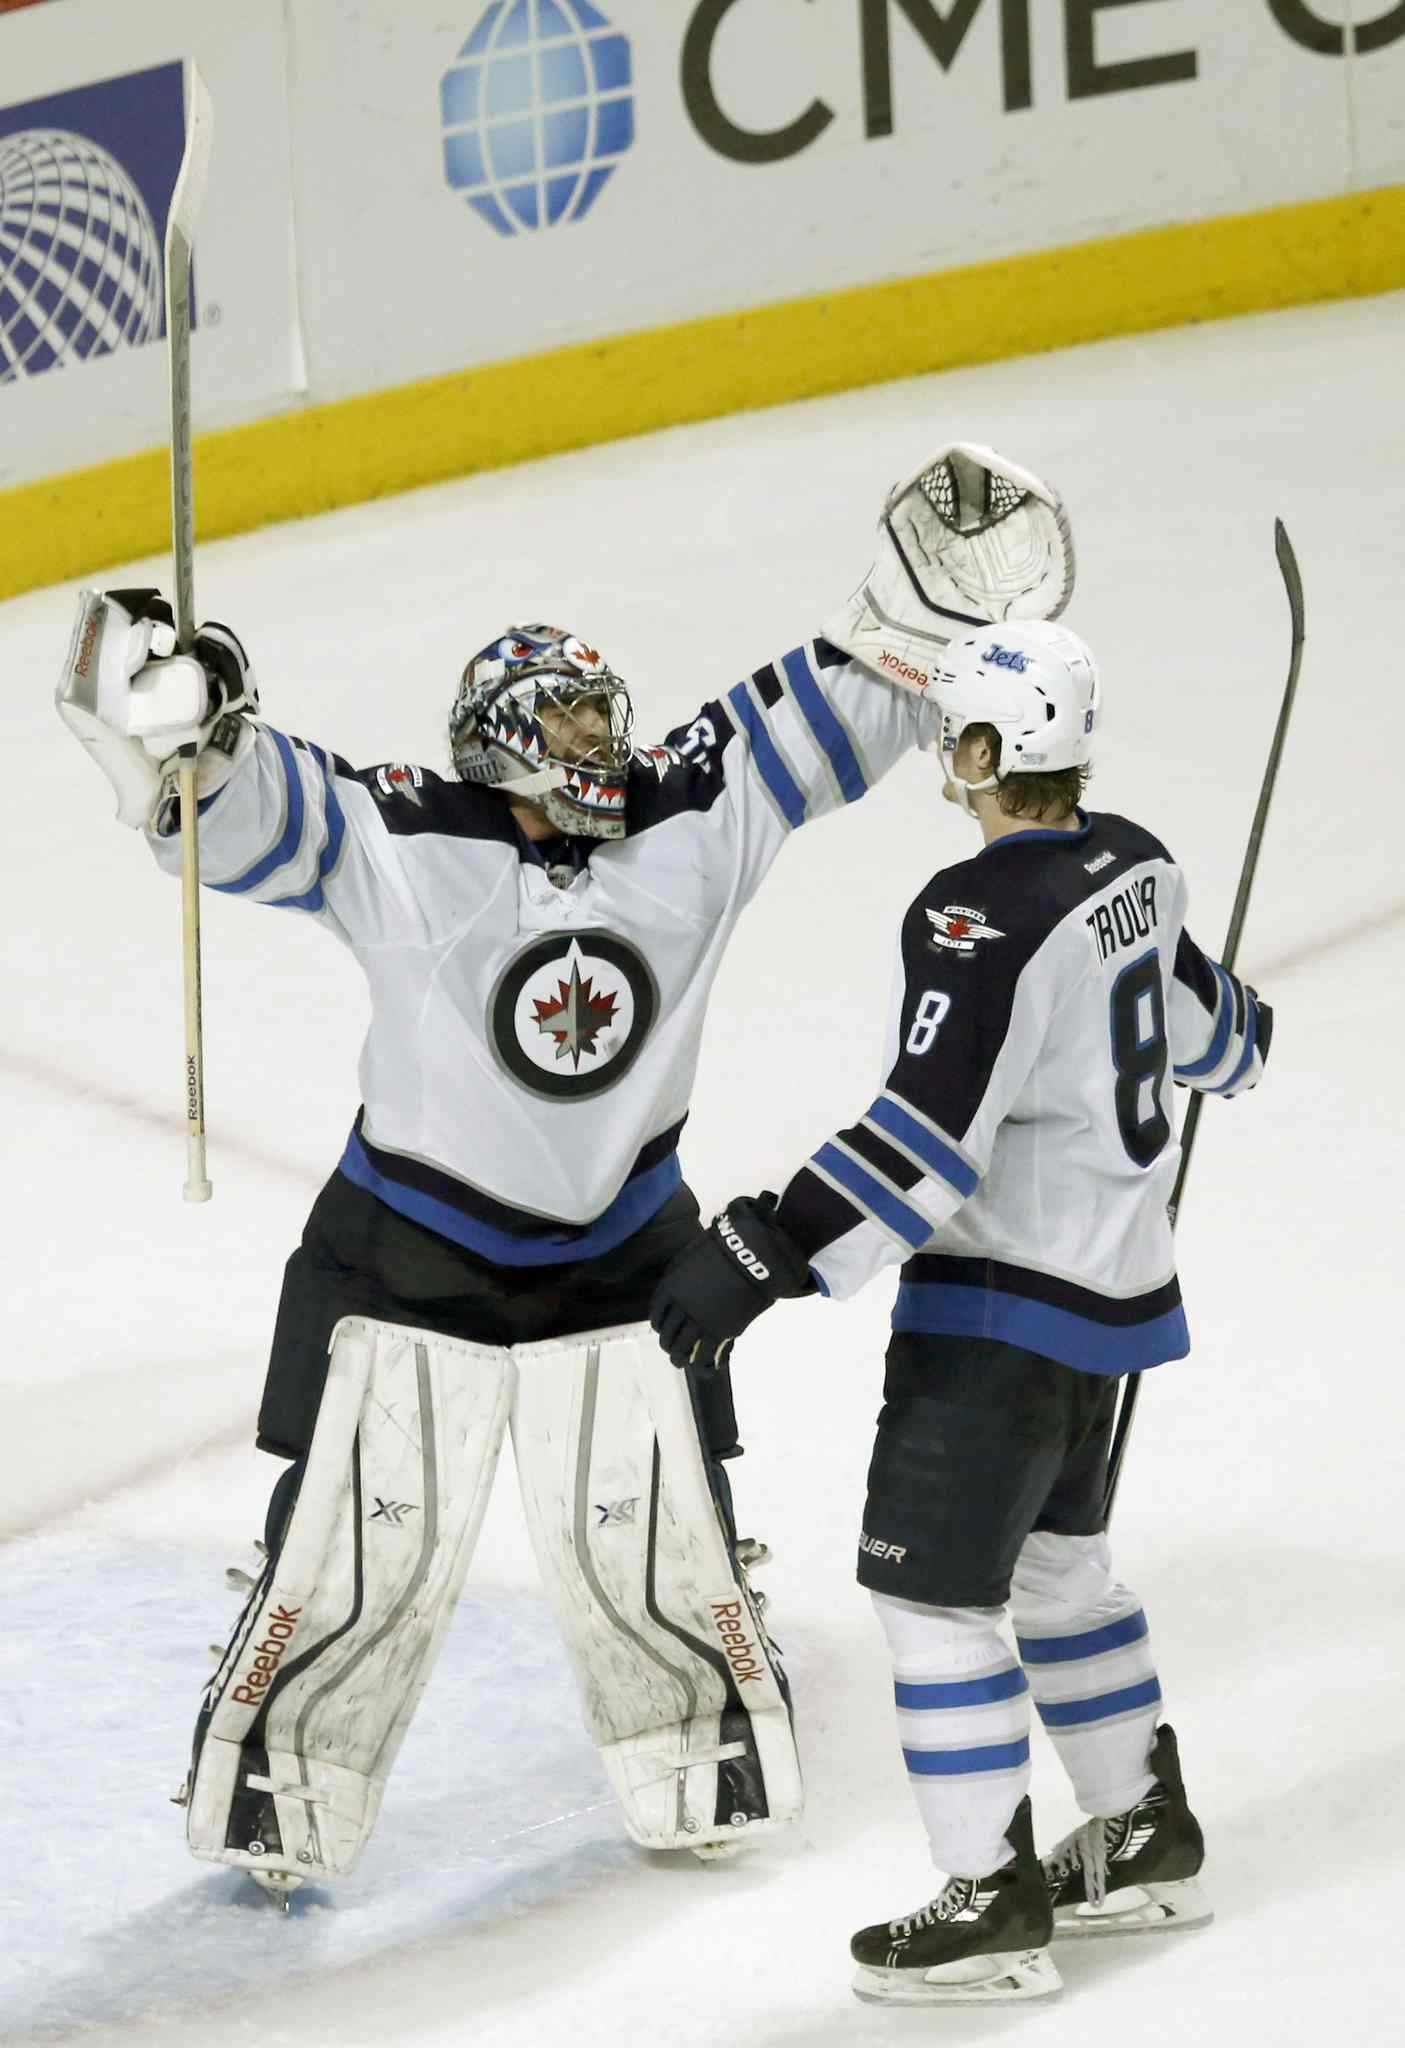 Jets goalie Al Montoya celebrates the Jets' 3-1 win over the Blackhawks with Jacob Trouba.